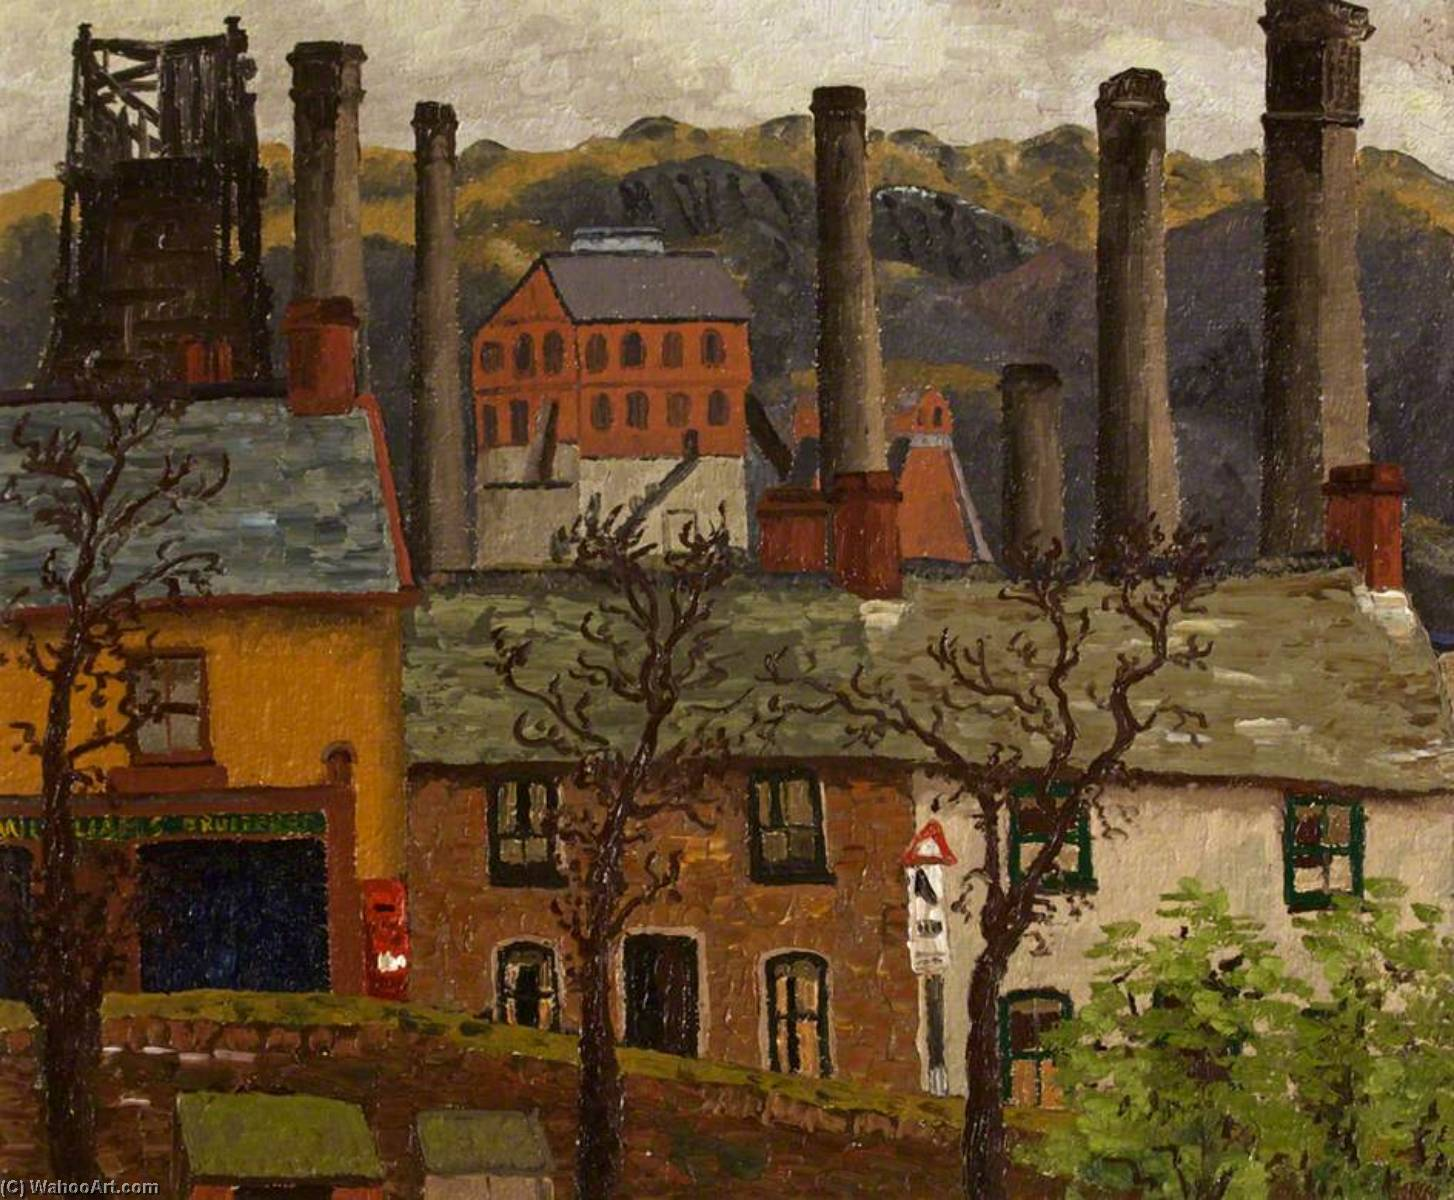 Caeharris почта из гвернервина Дома, холст, масло по Cedric Lockwood Morris (1889-1982, United Kingdom)